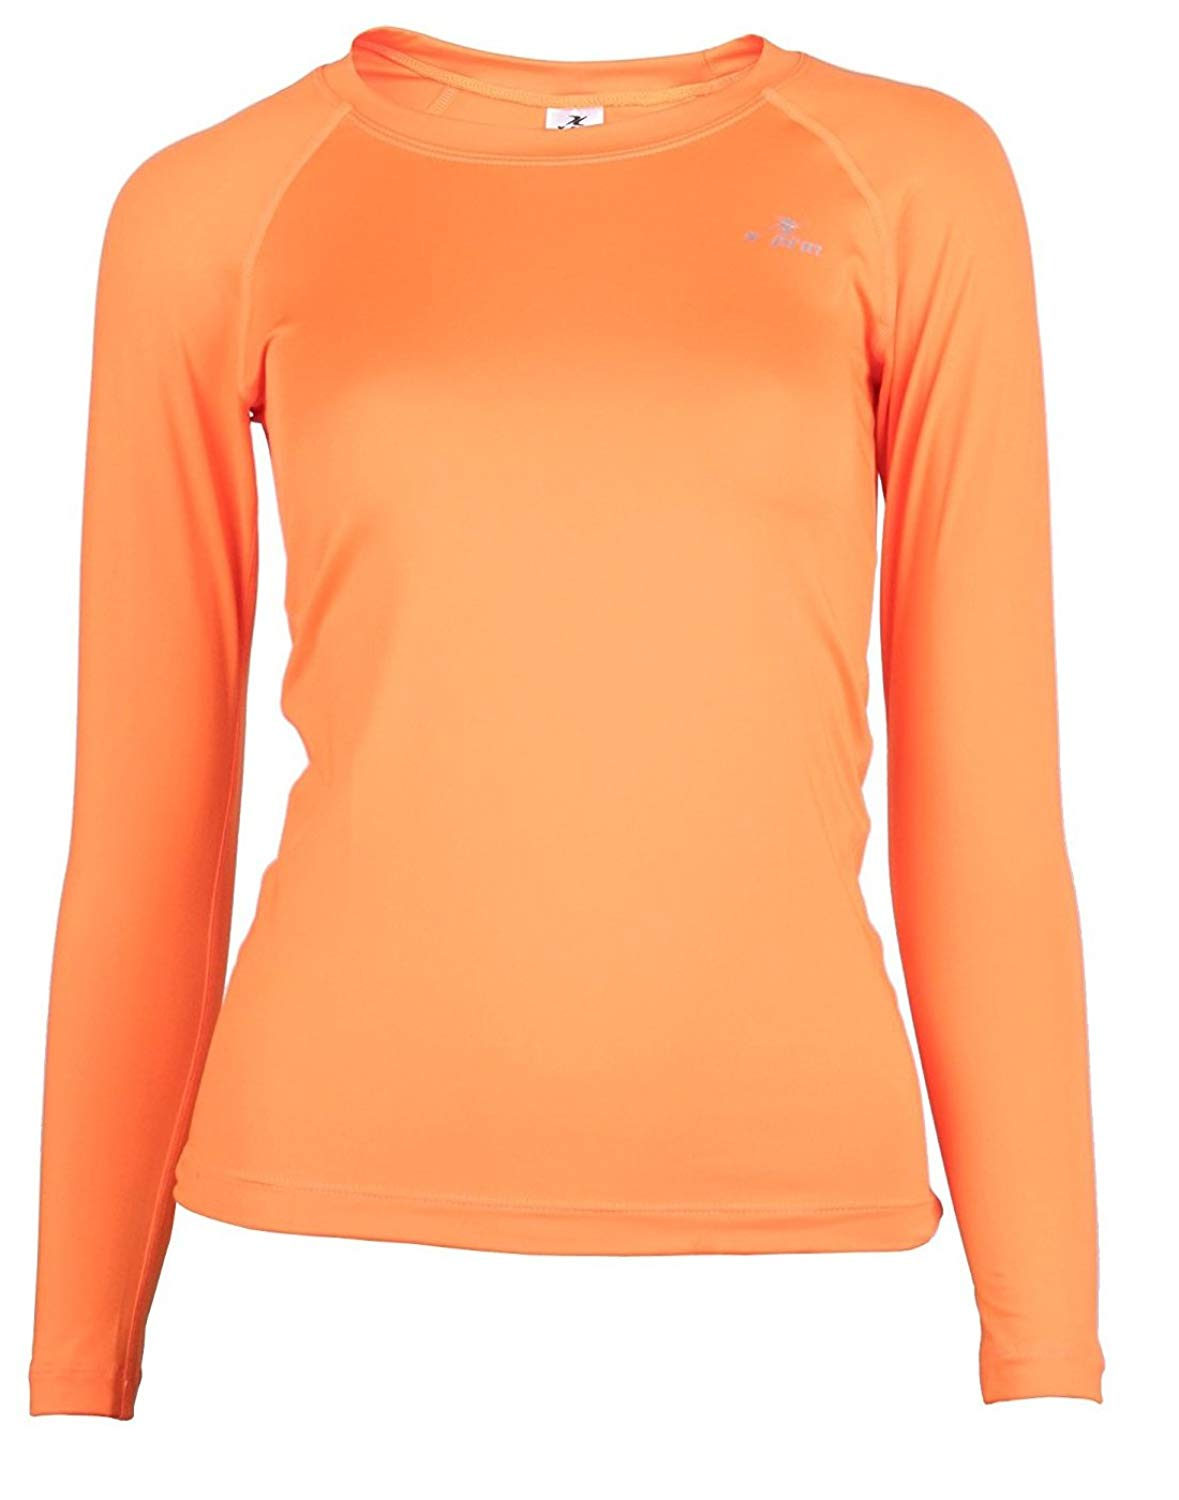 XPRIN A100 Series Women's Long Sleeve Cool Base Layer Compression Shirt Sports Wear